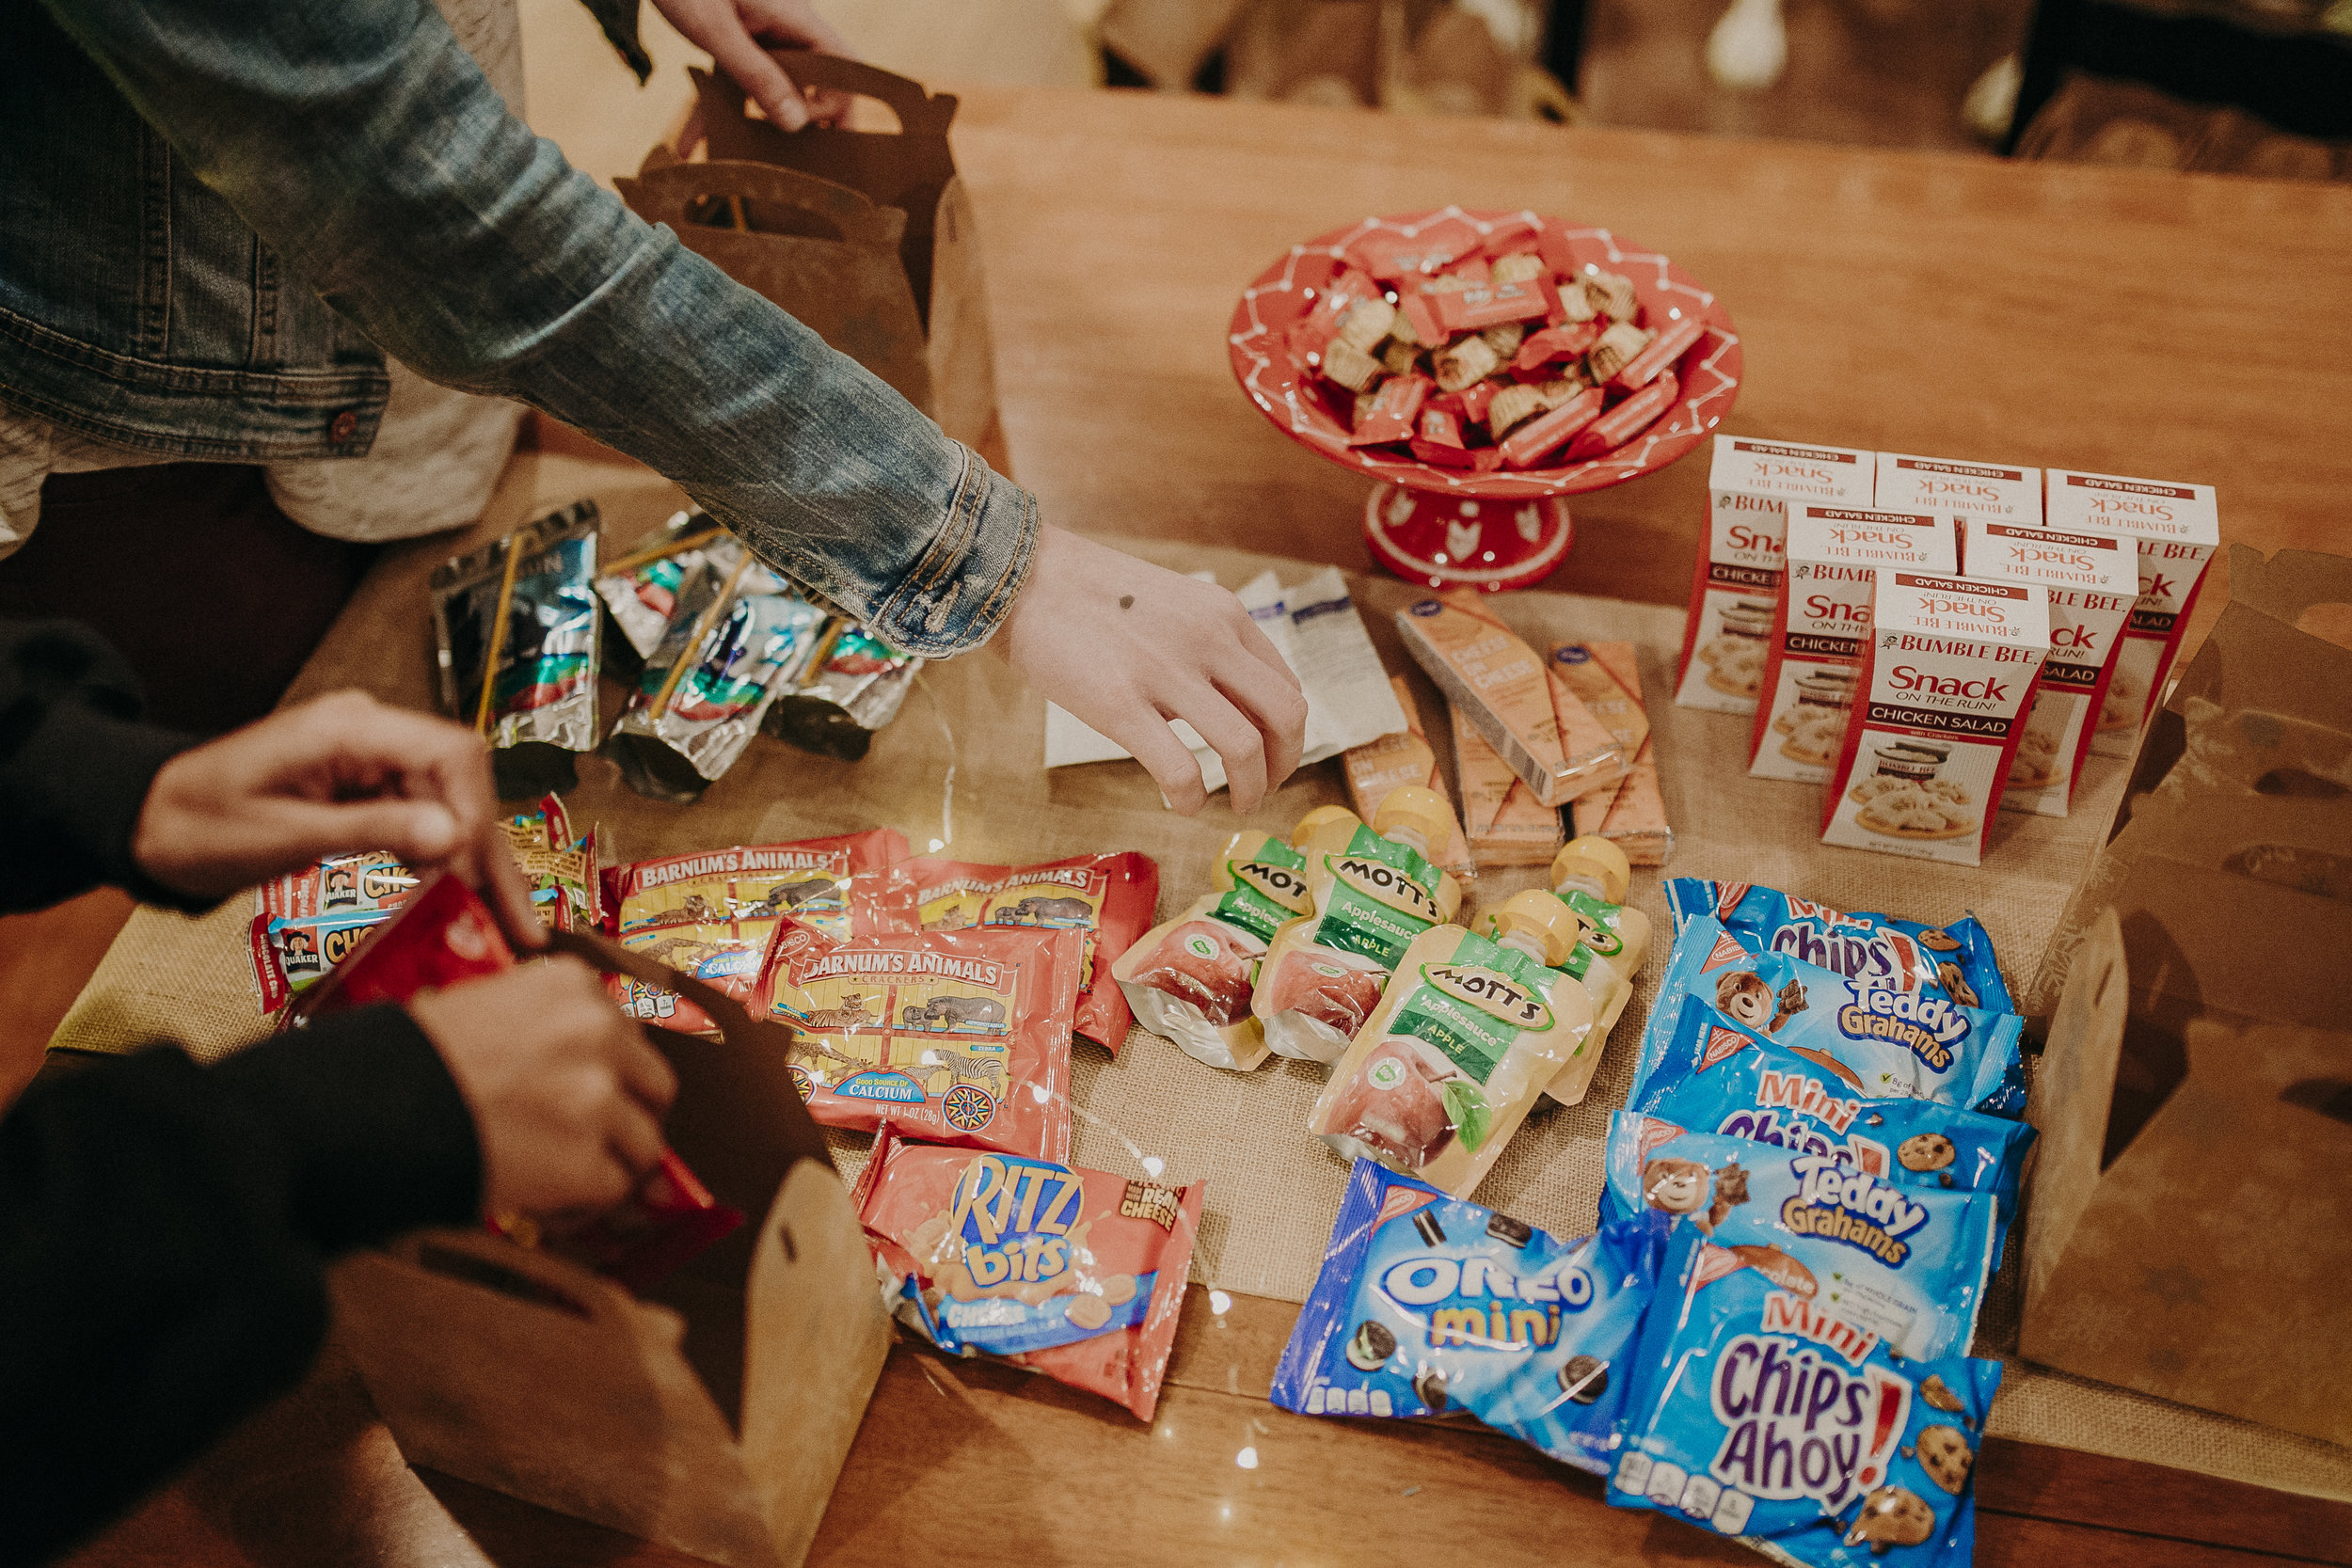 Once the boxes were all assembled, it was time to fill them. I tried to get a variety of foods, to satisfy any craving. From chocolates, to chicken salad with crackers, to applesauce. I hoped there was something for everyone.